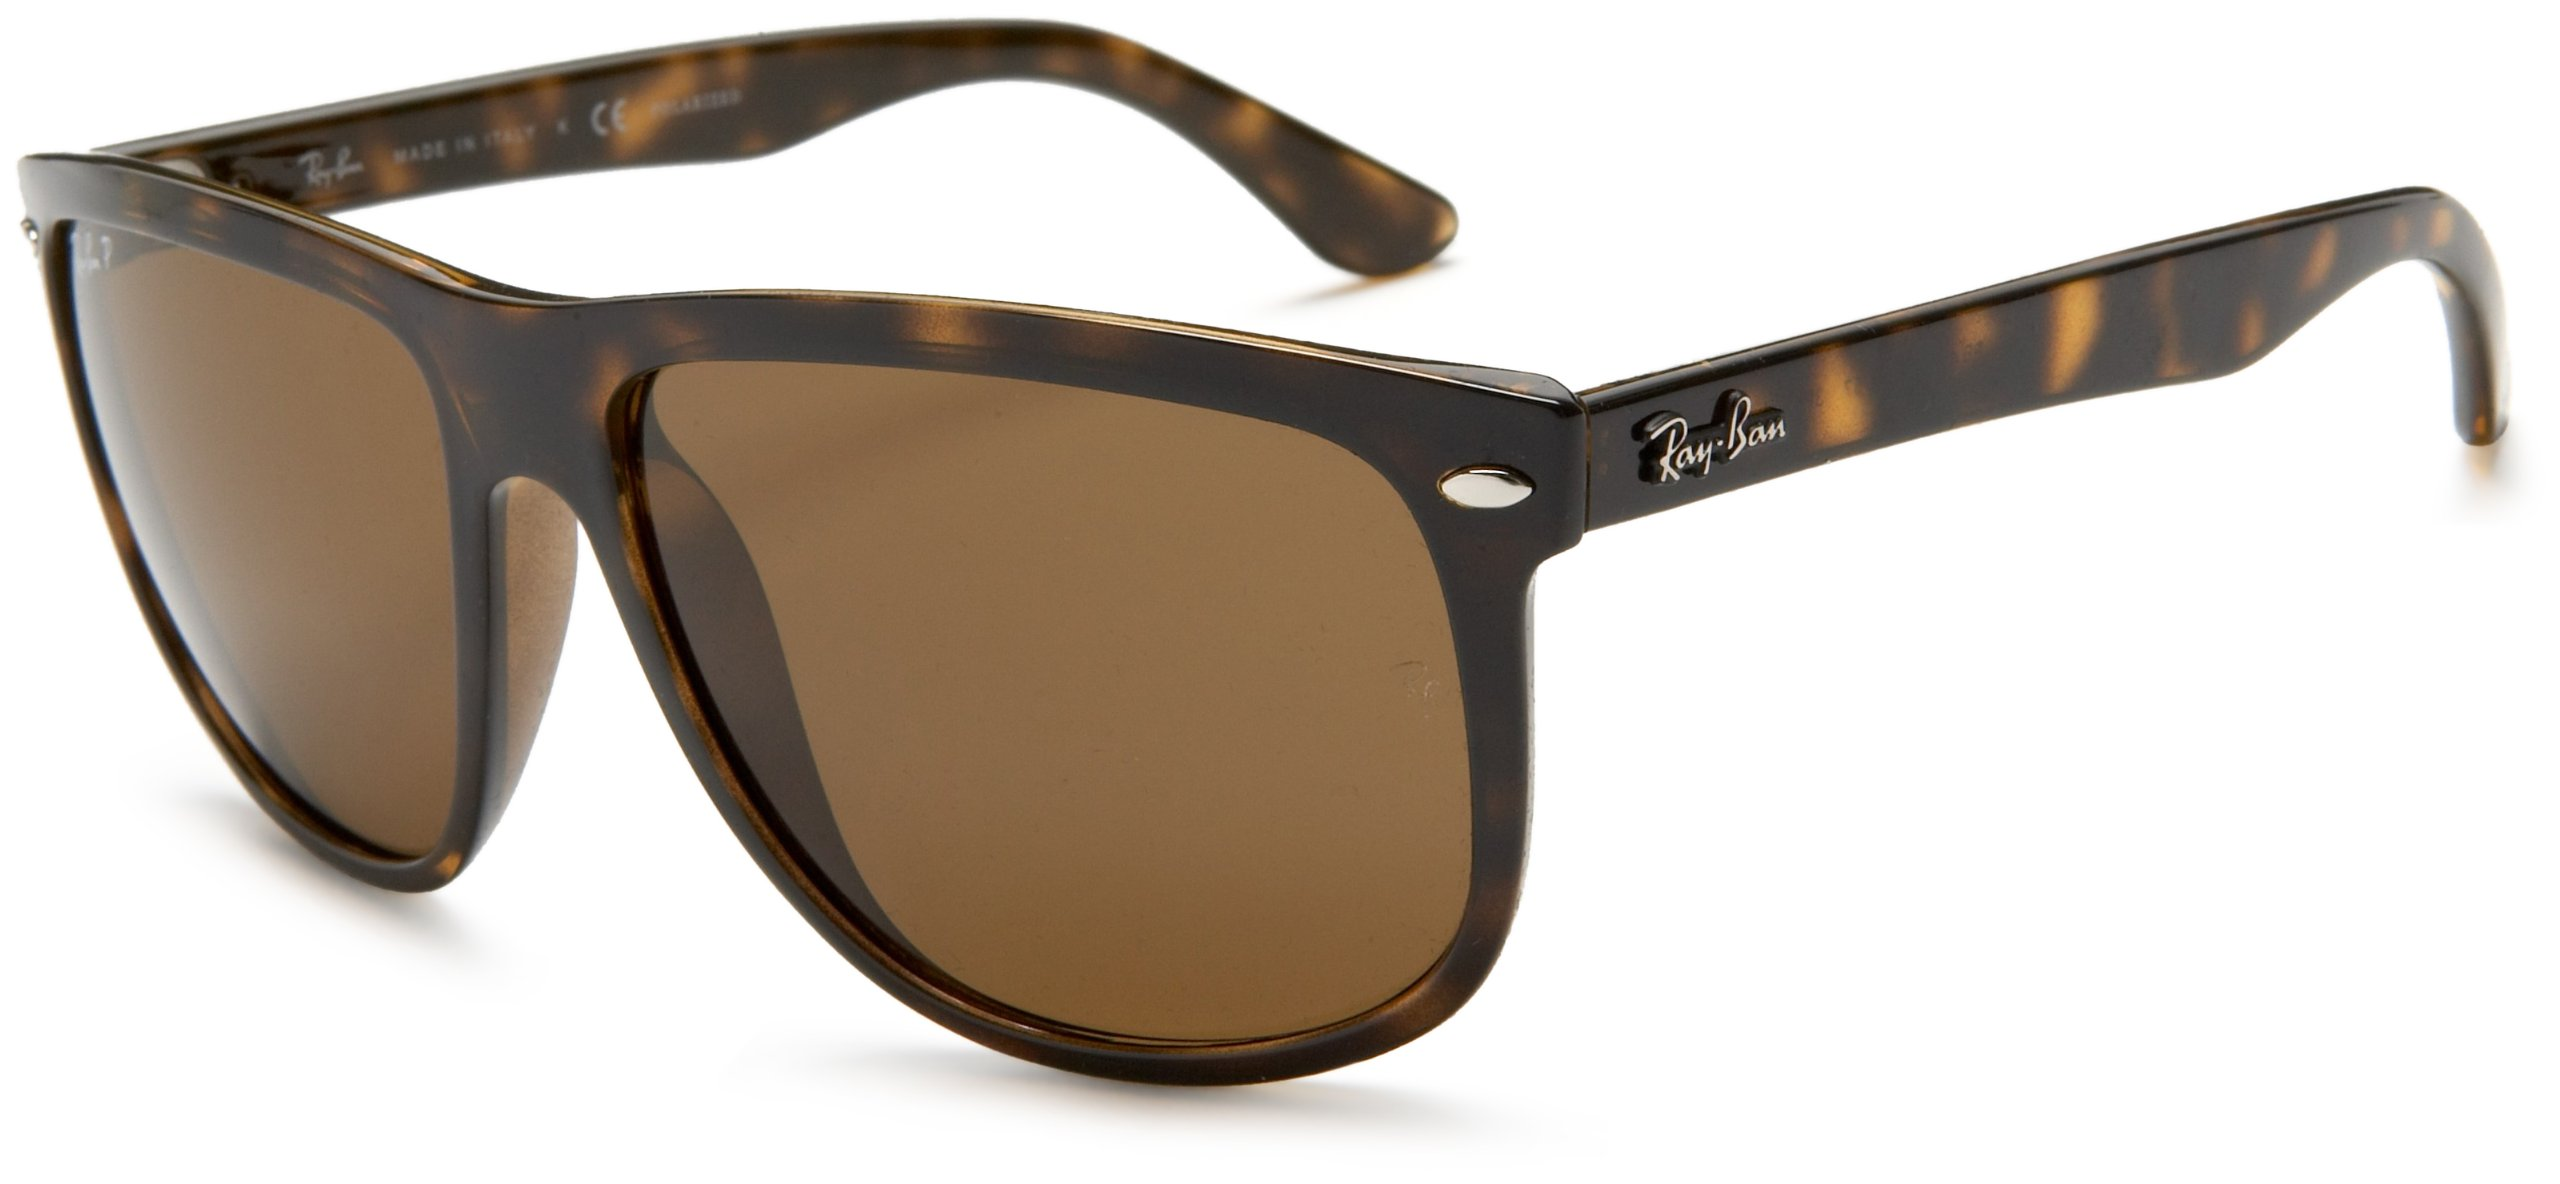 Ray-Ban RB4147 Boyfriend Square Sunglasses, Light Tortoise/Polarized Brown, 60 mm by Ray-Ban